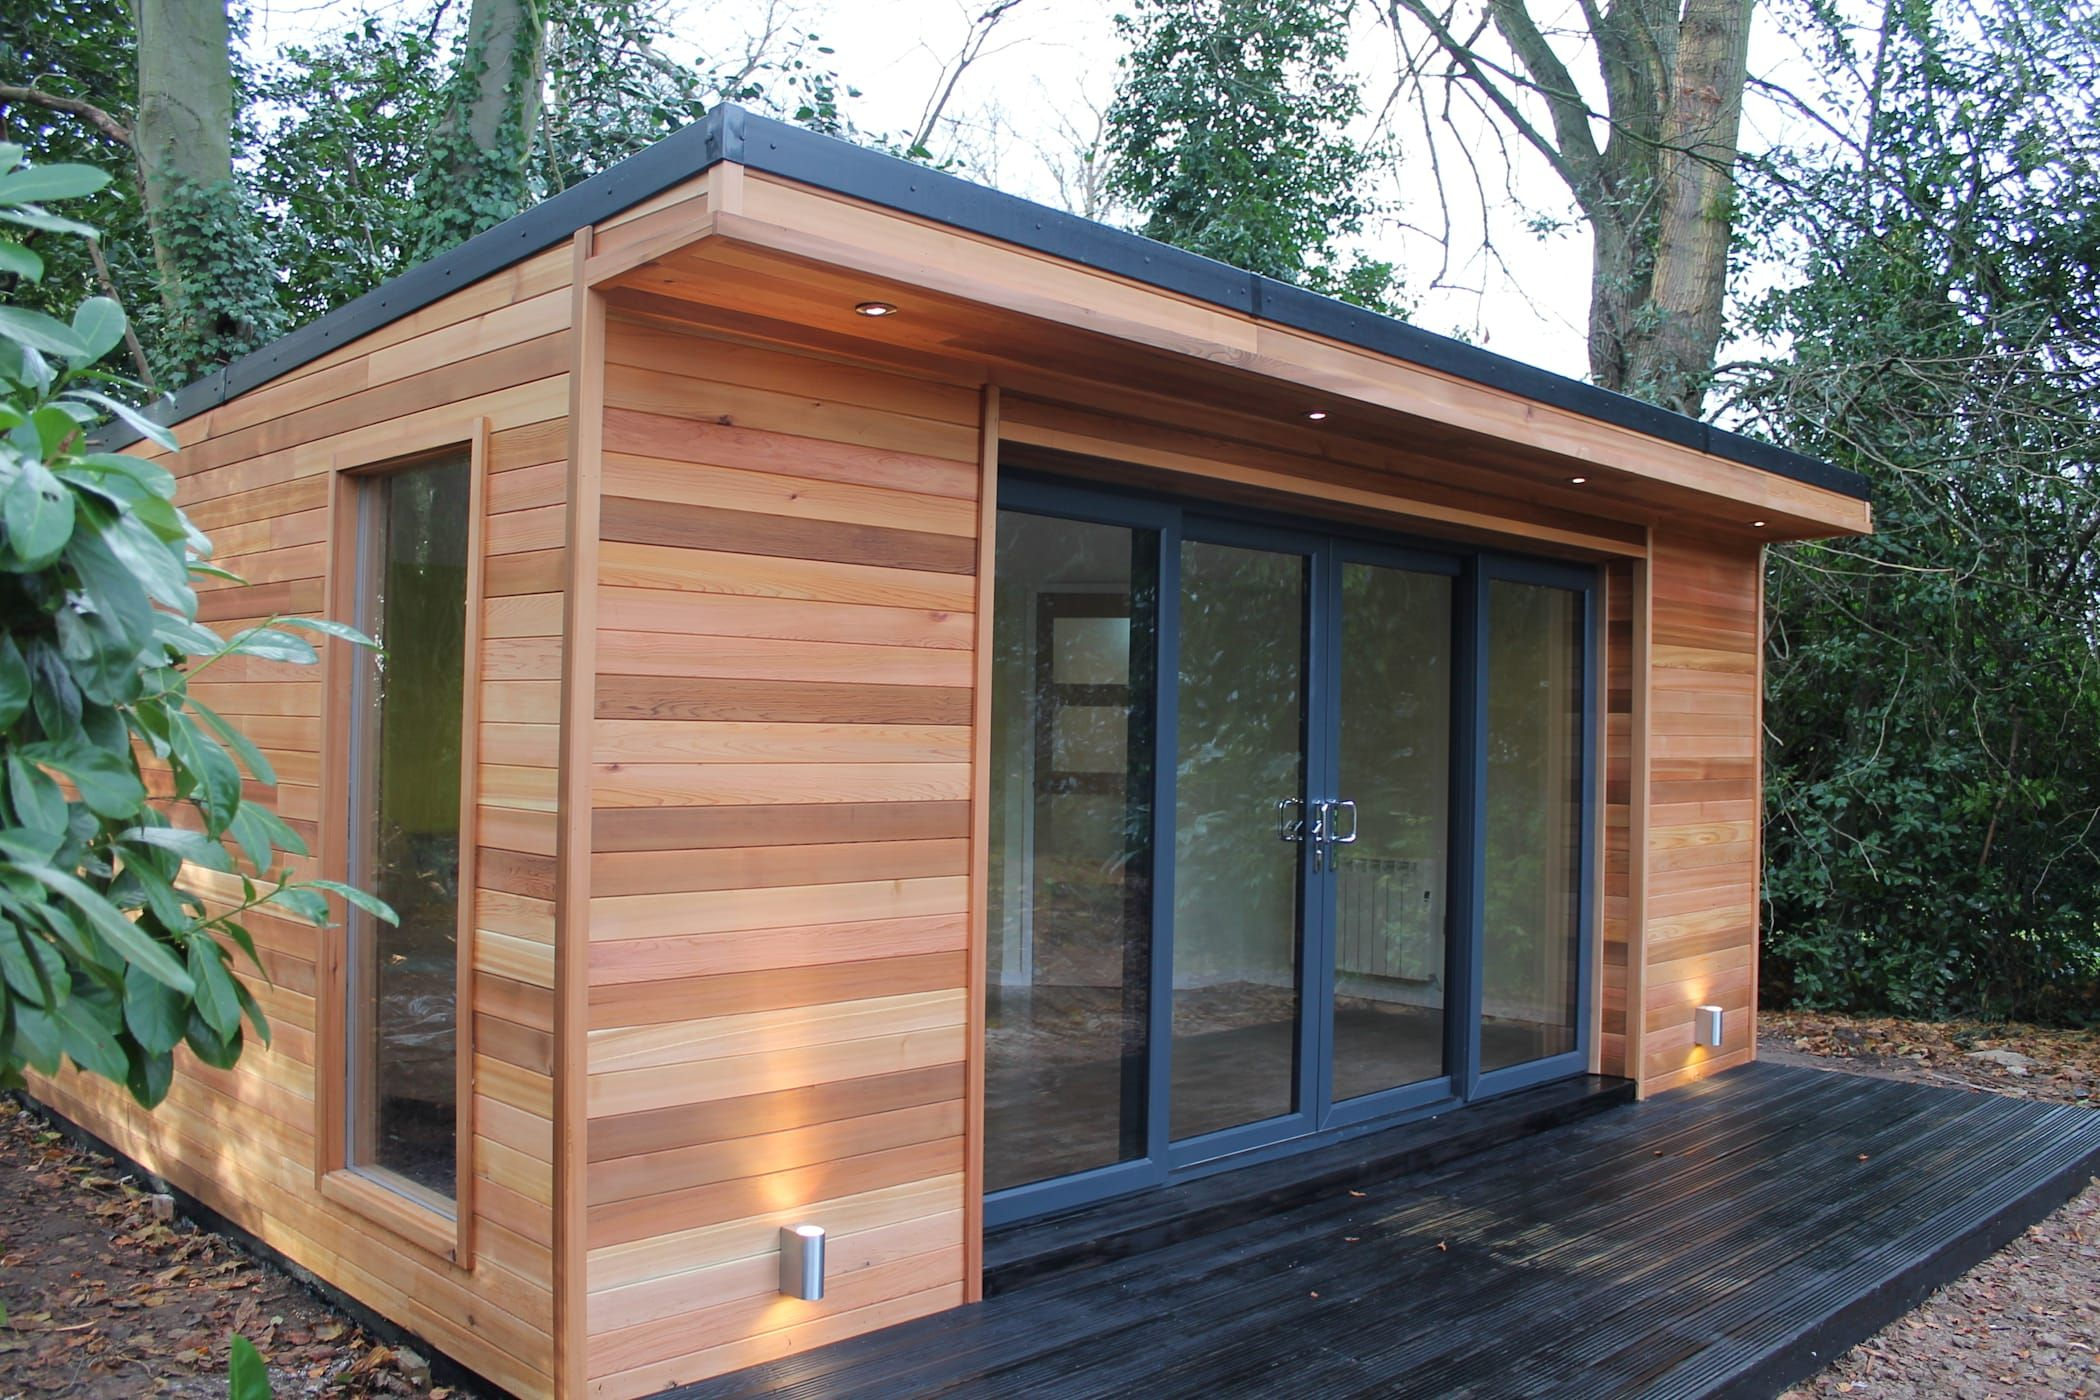 'the crusoe classic' 6m x 4m garden room / home office